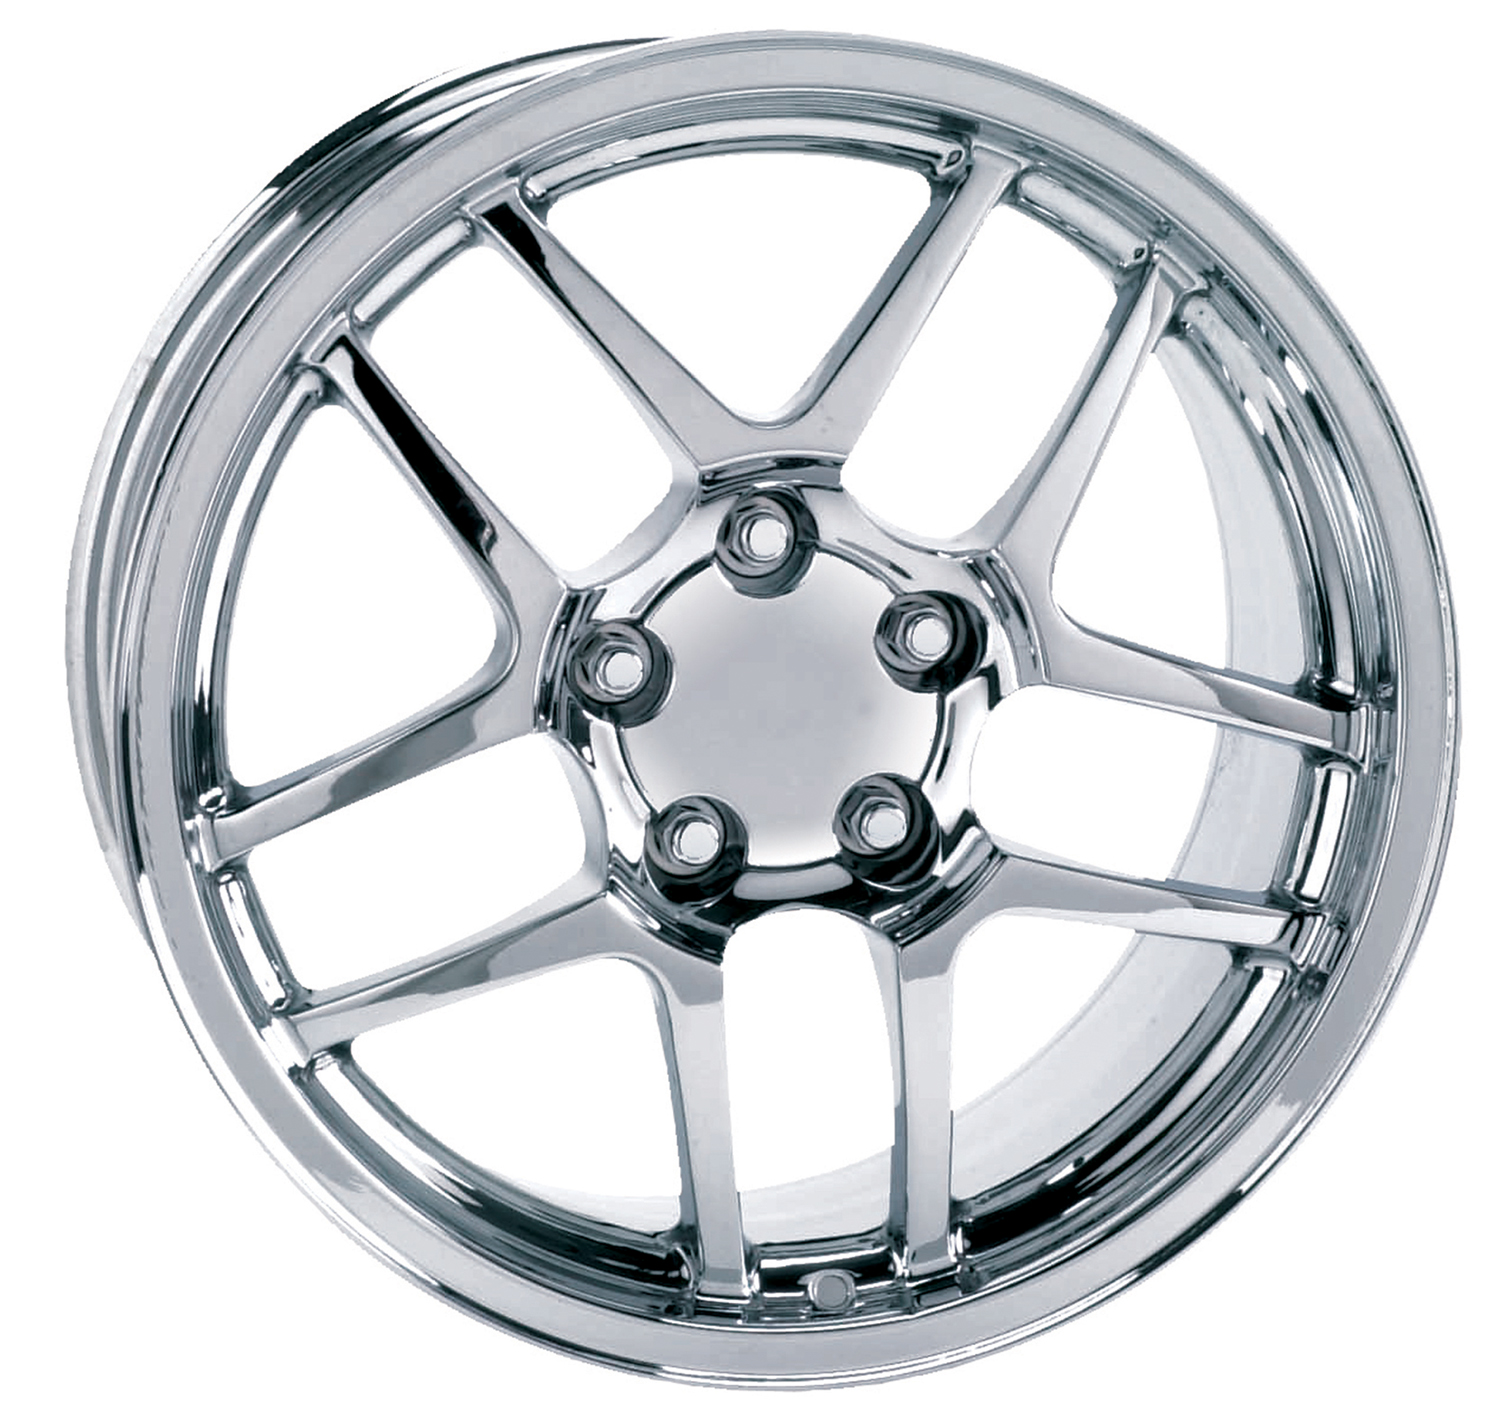 Chevrolet Corvette 1997-2004 18x9.5 5x4.75 +57 -C5 Z06 Style Wheel - Chrome With Cap